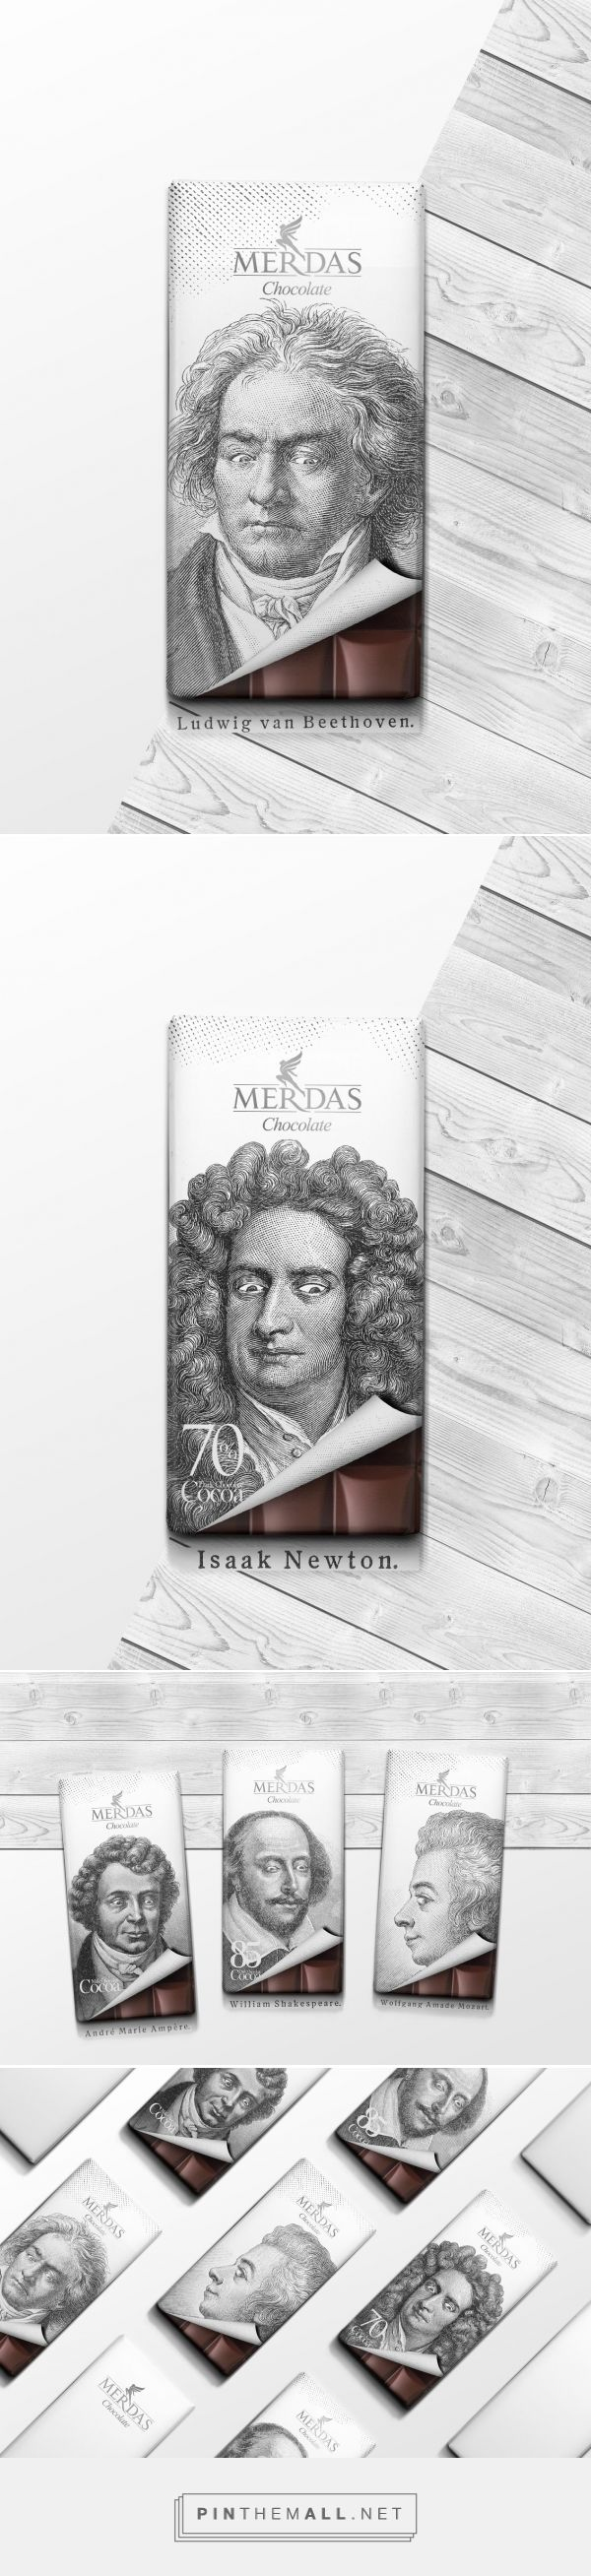 Even legends cannot resist a treat! Merdas Classic Chocolate packaging design by Masoud Rostami - http://www.packagingoftheworld.com/2016/08/merdas-classic-chocolate.html